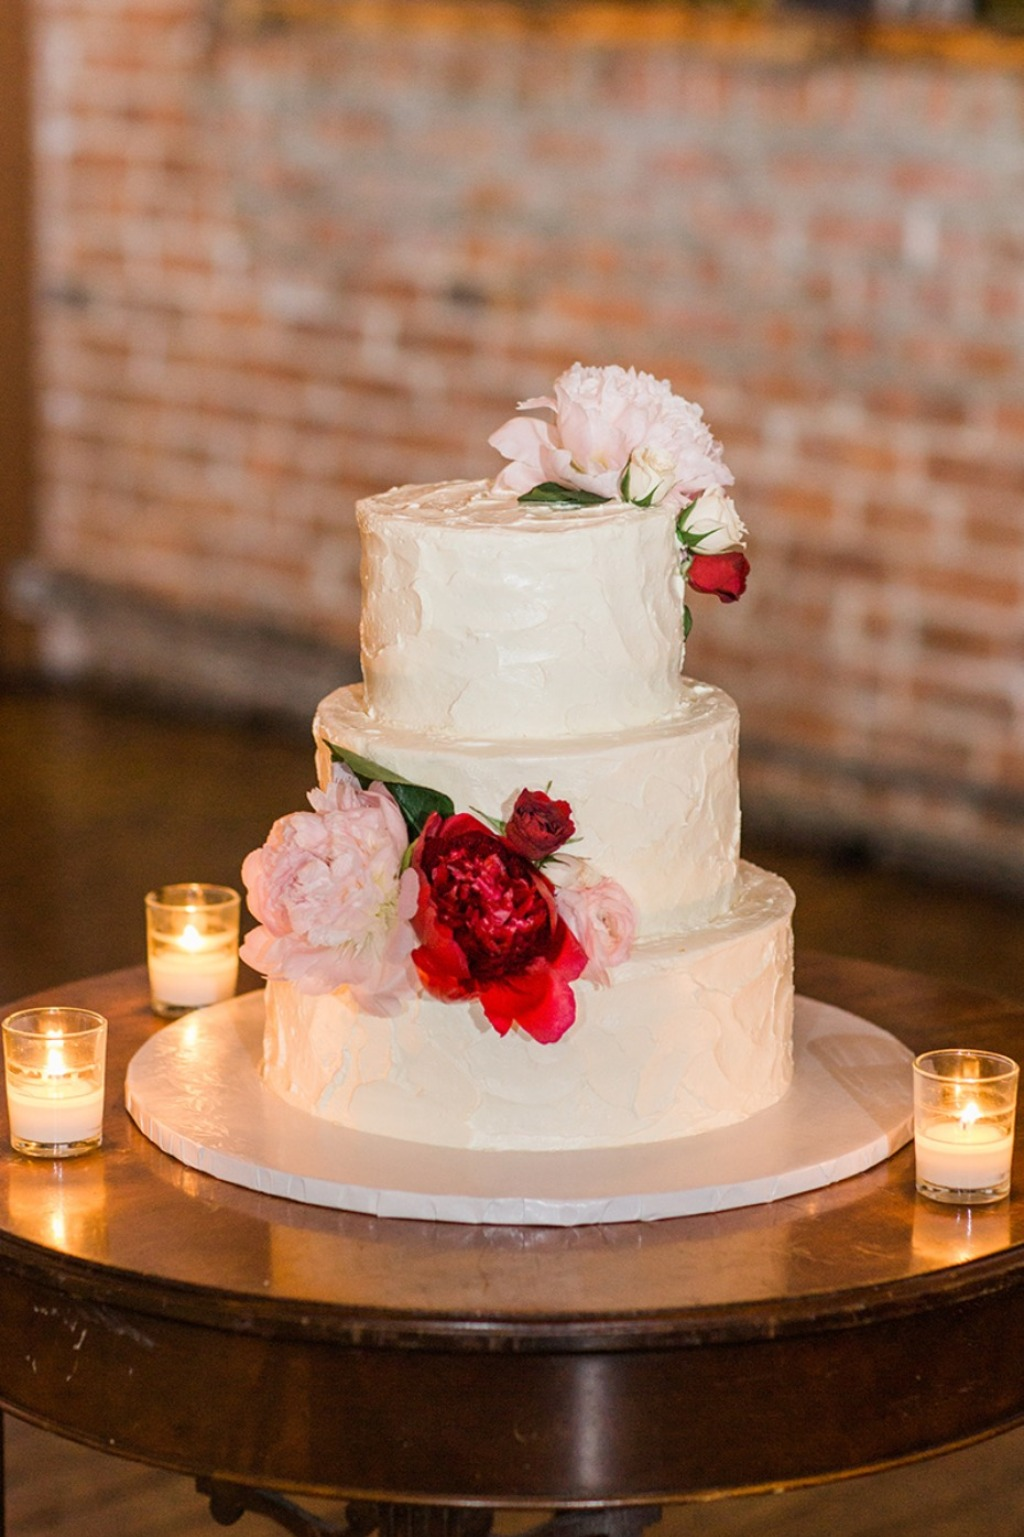 We are a custom order bakery based in Astoria, New York. We create delicious and beautiful cakes, mini cakes, and cupcakes. Our products